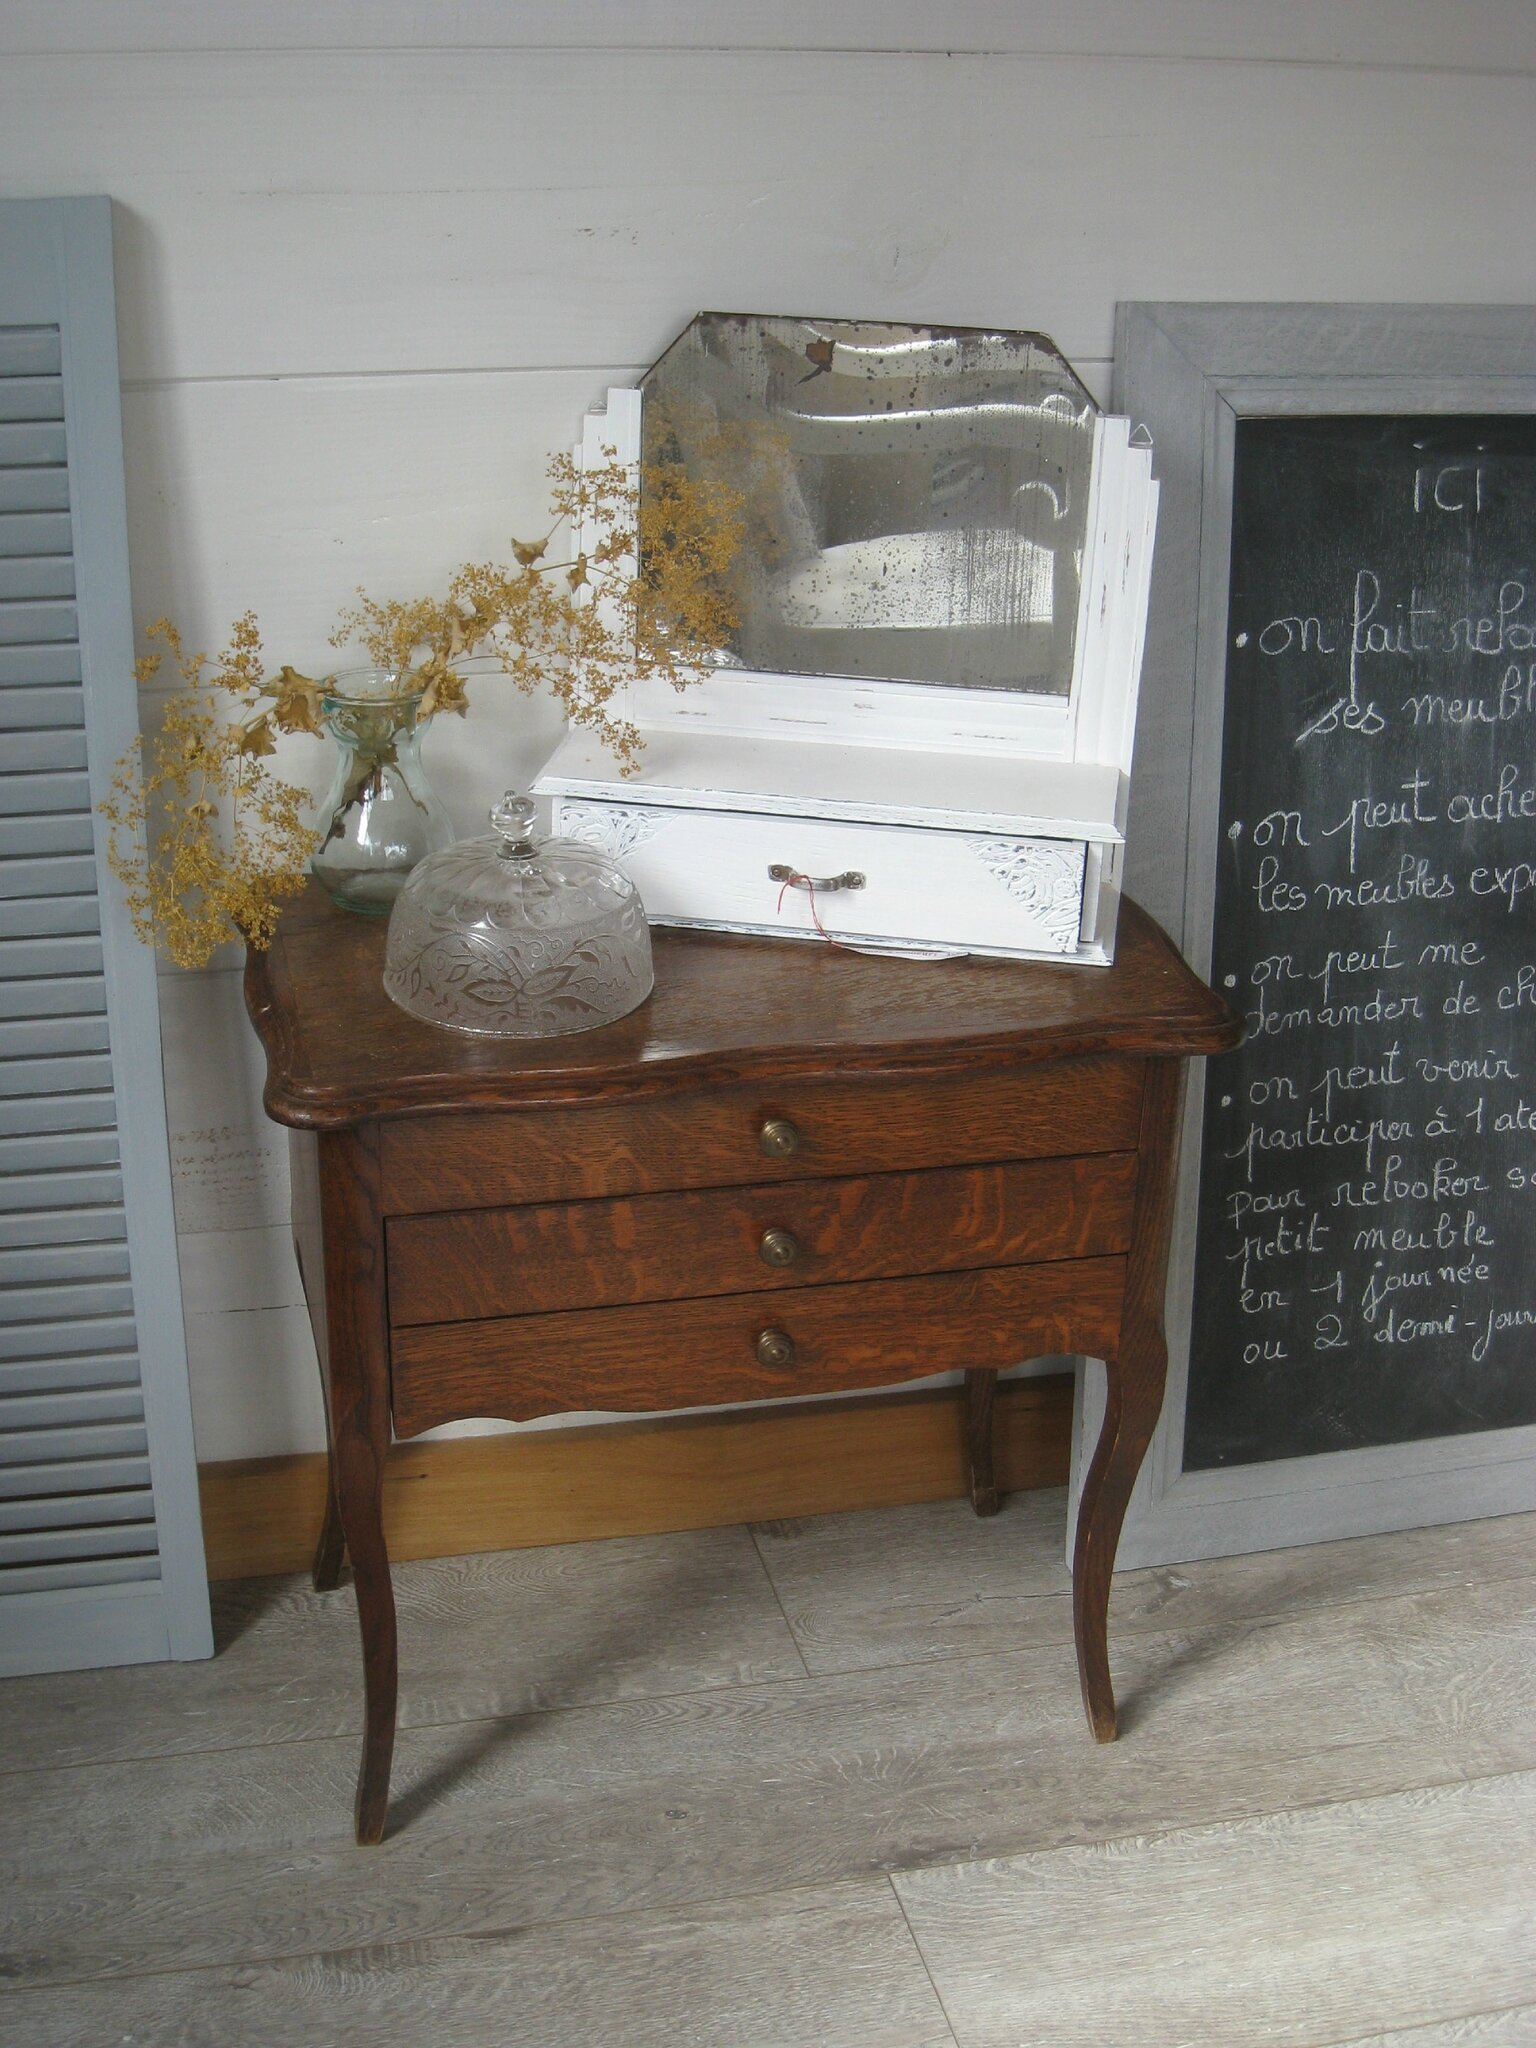 Brocante de Nomain 27 septembre 2015